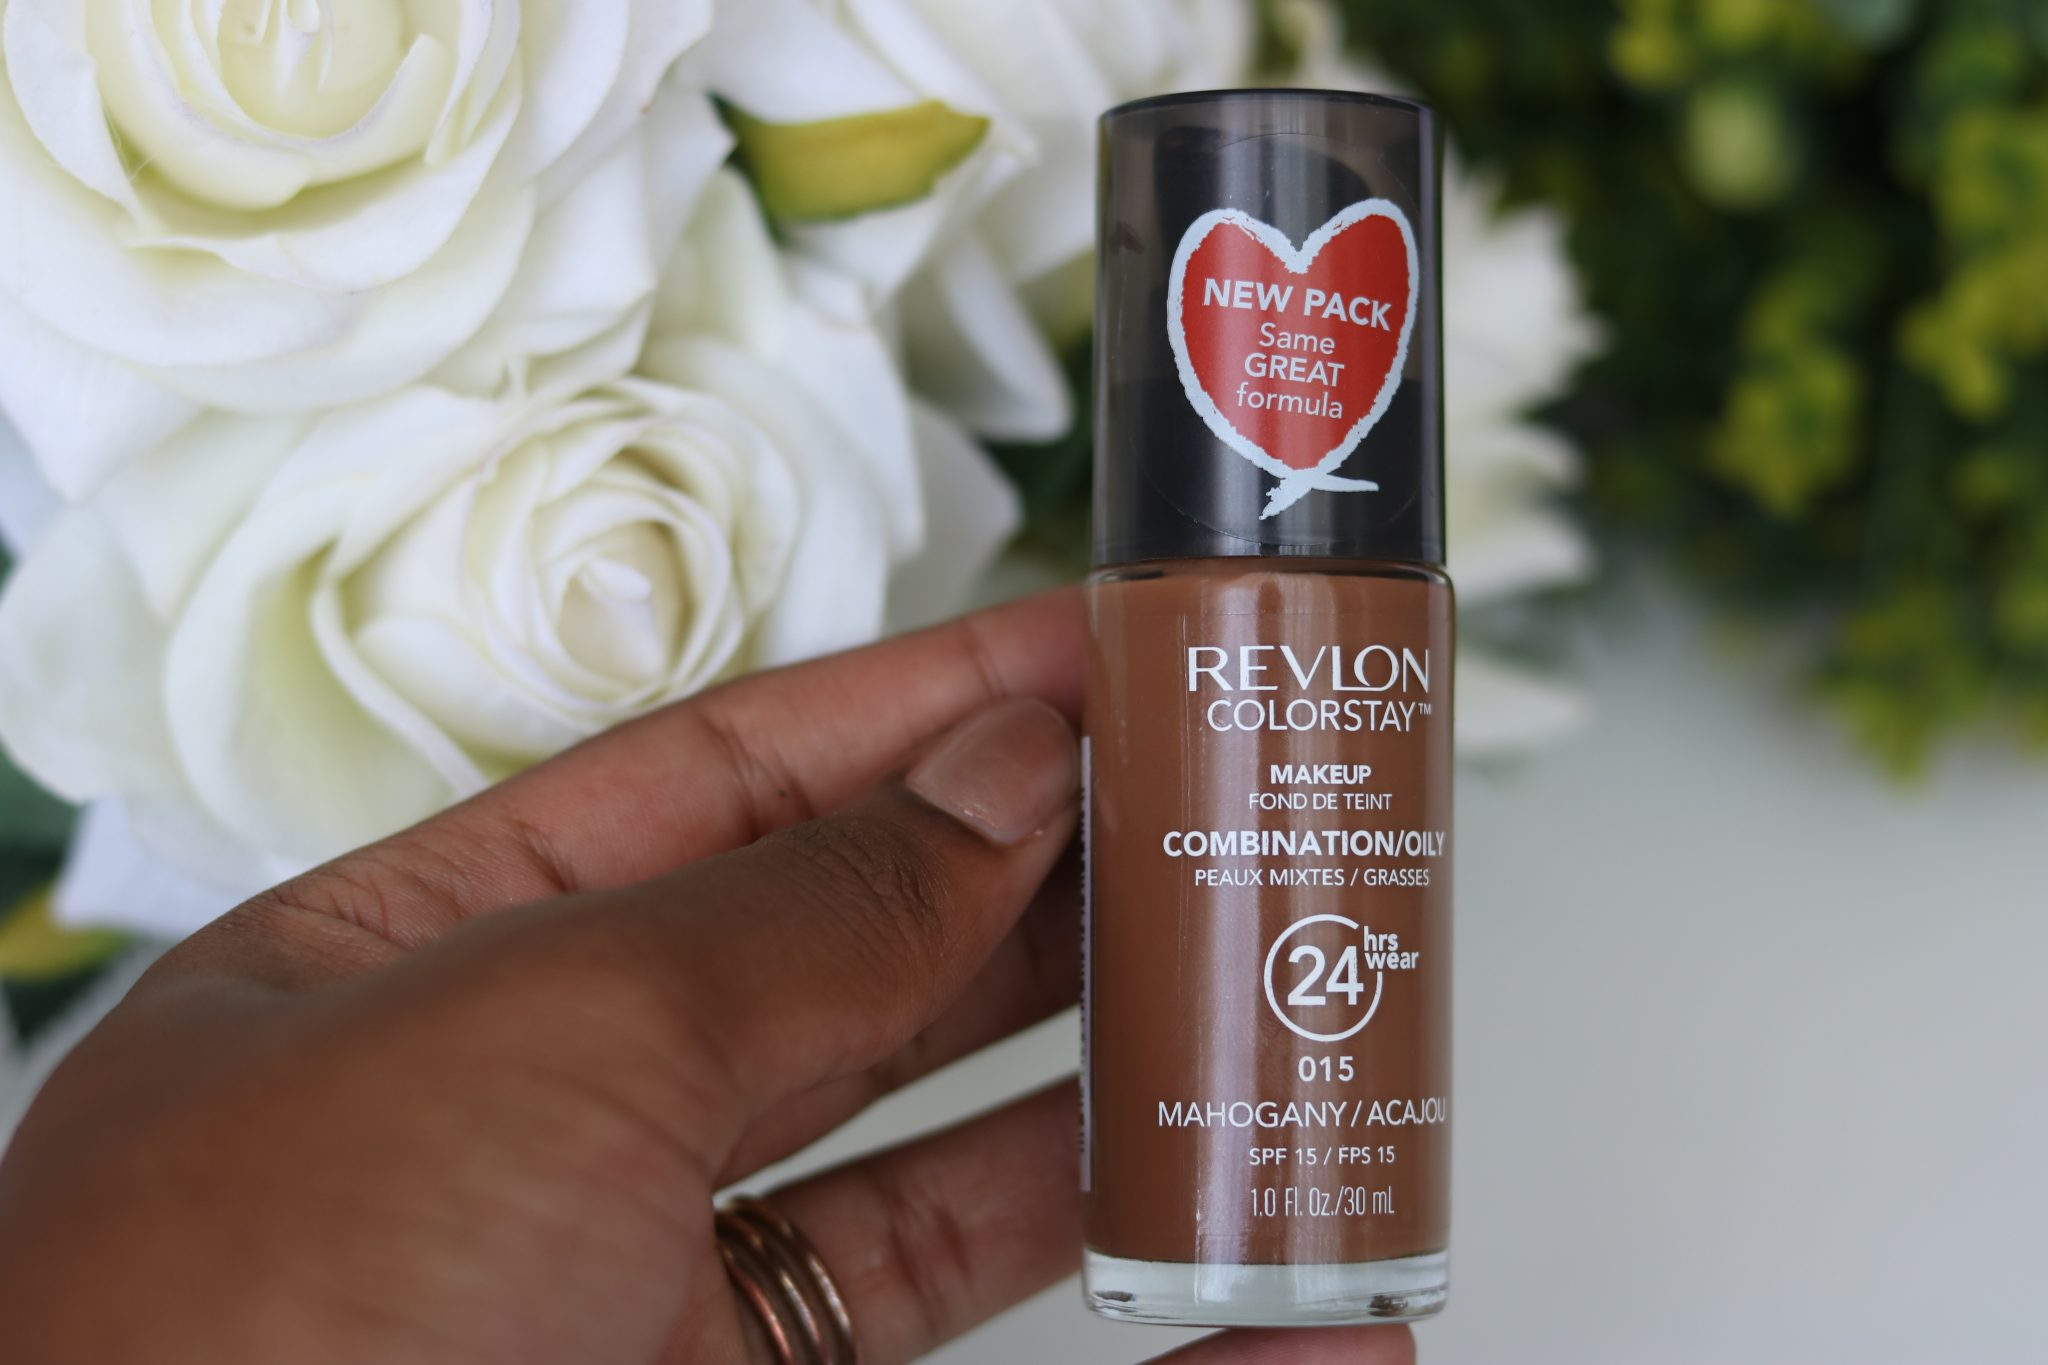 REVLON Colorstay Foundation Review South Africa